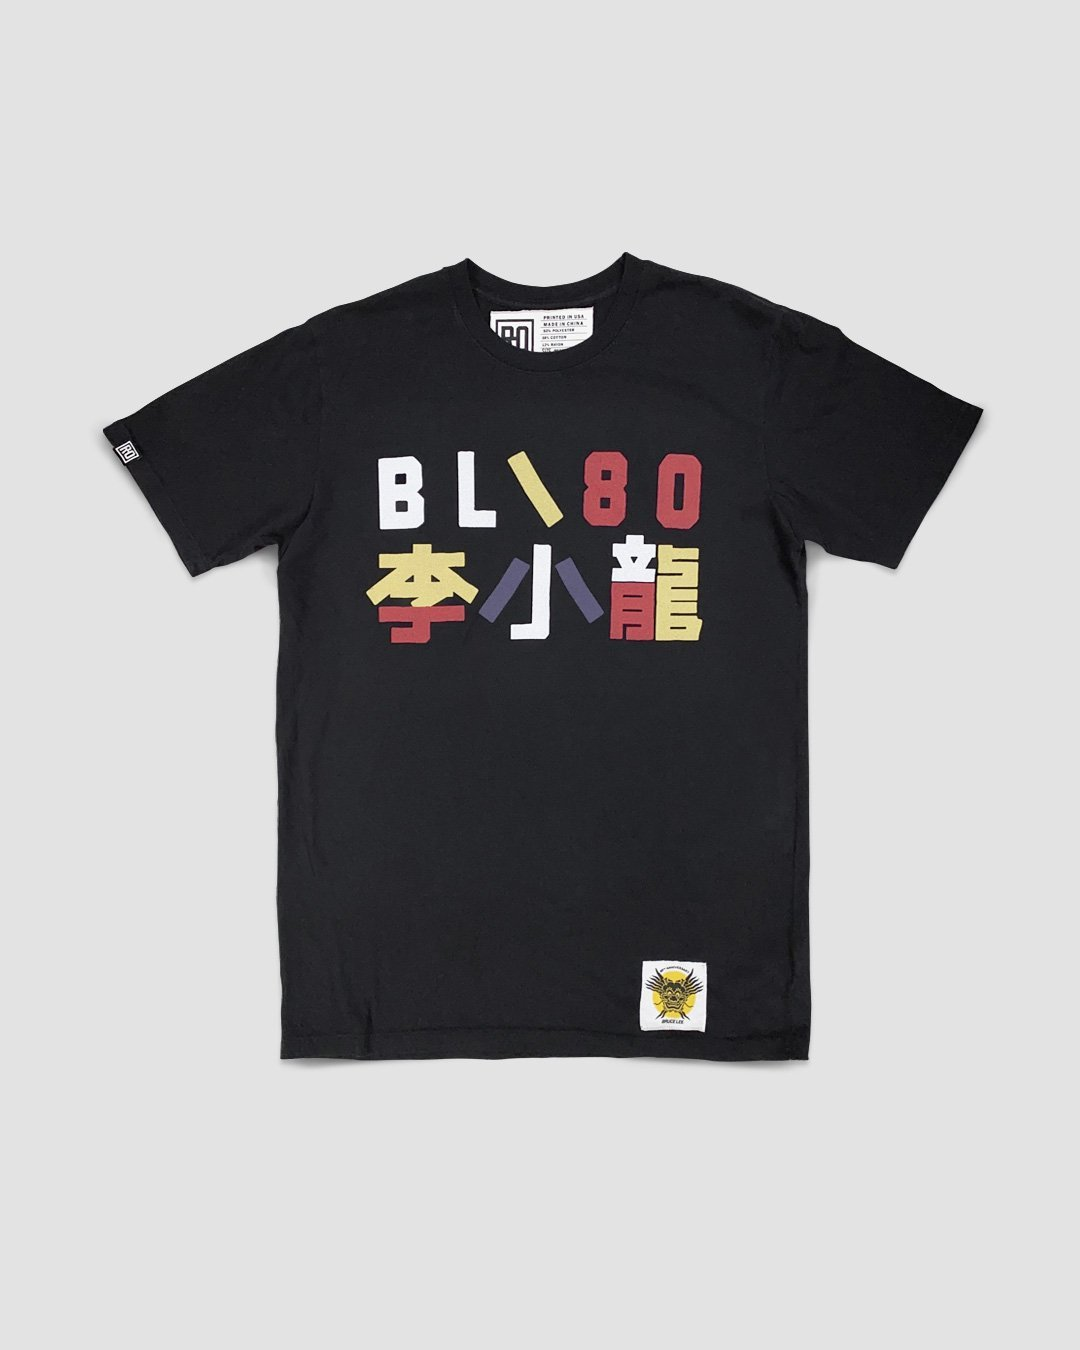 Bruce Lee 80 Tribute Tee - Roots of Inc dba Roots of Fight